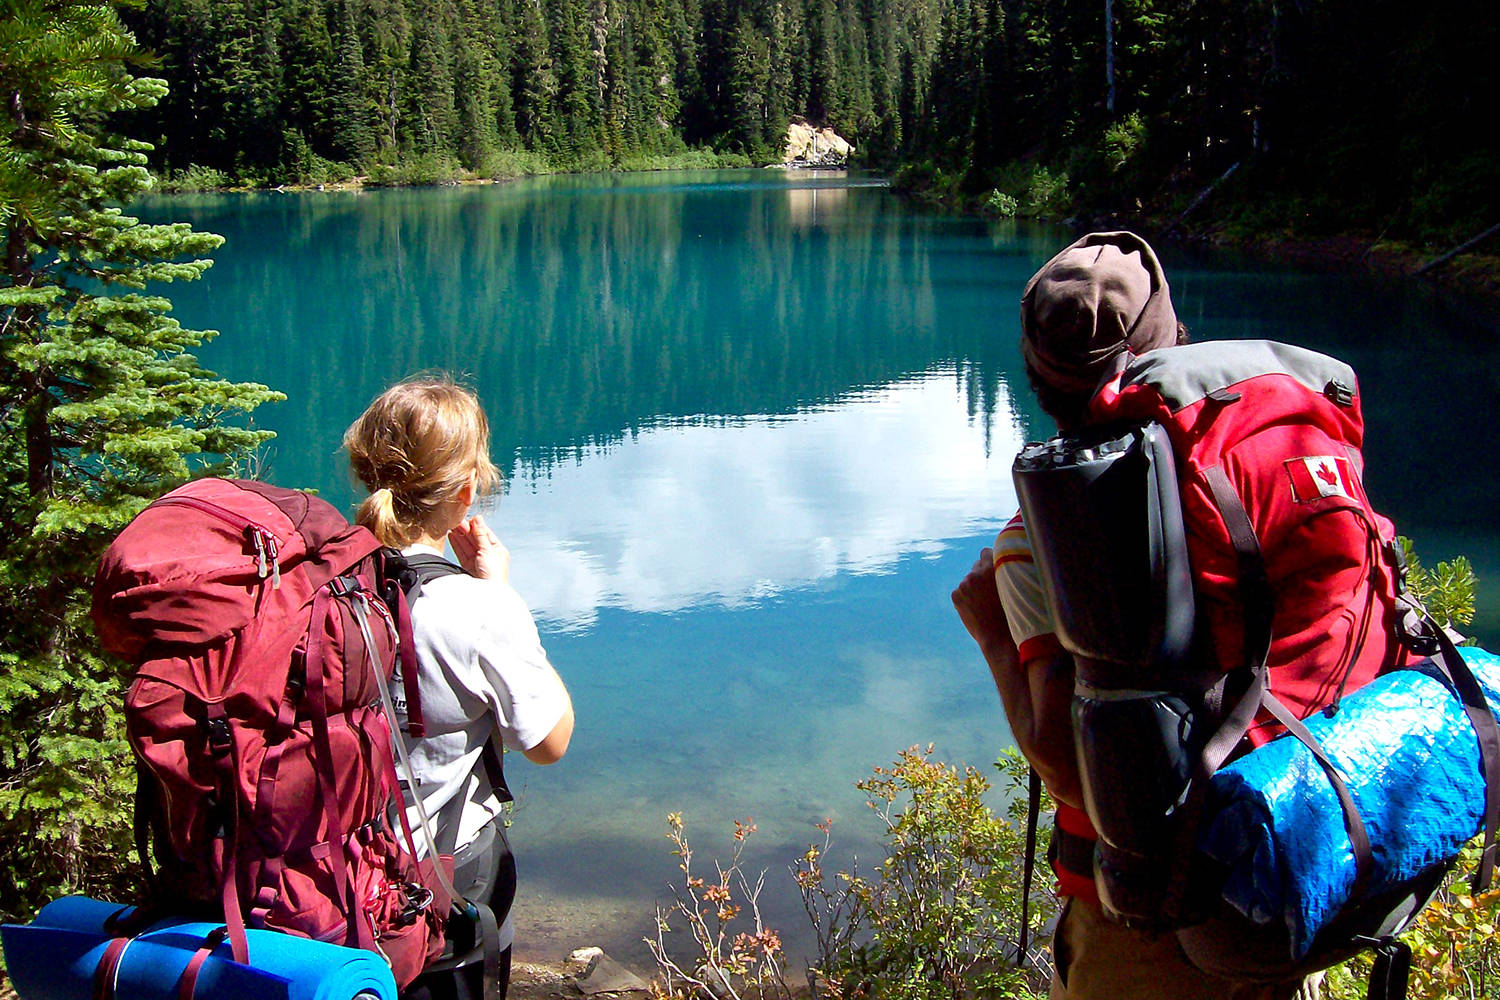 There are dozens of great hikes in the Lower Mainland, including a day trip to Barrier Lake. Keep going for an even more beautiful view at Garibaldi Lake. (Photo: Amy Attas)